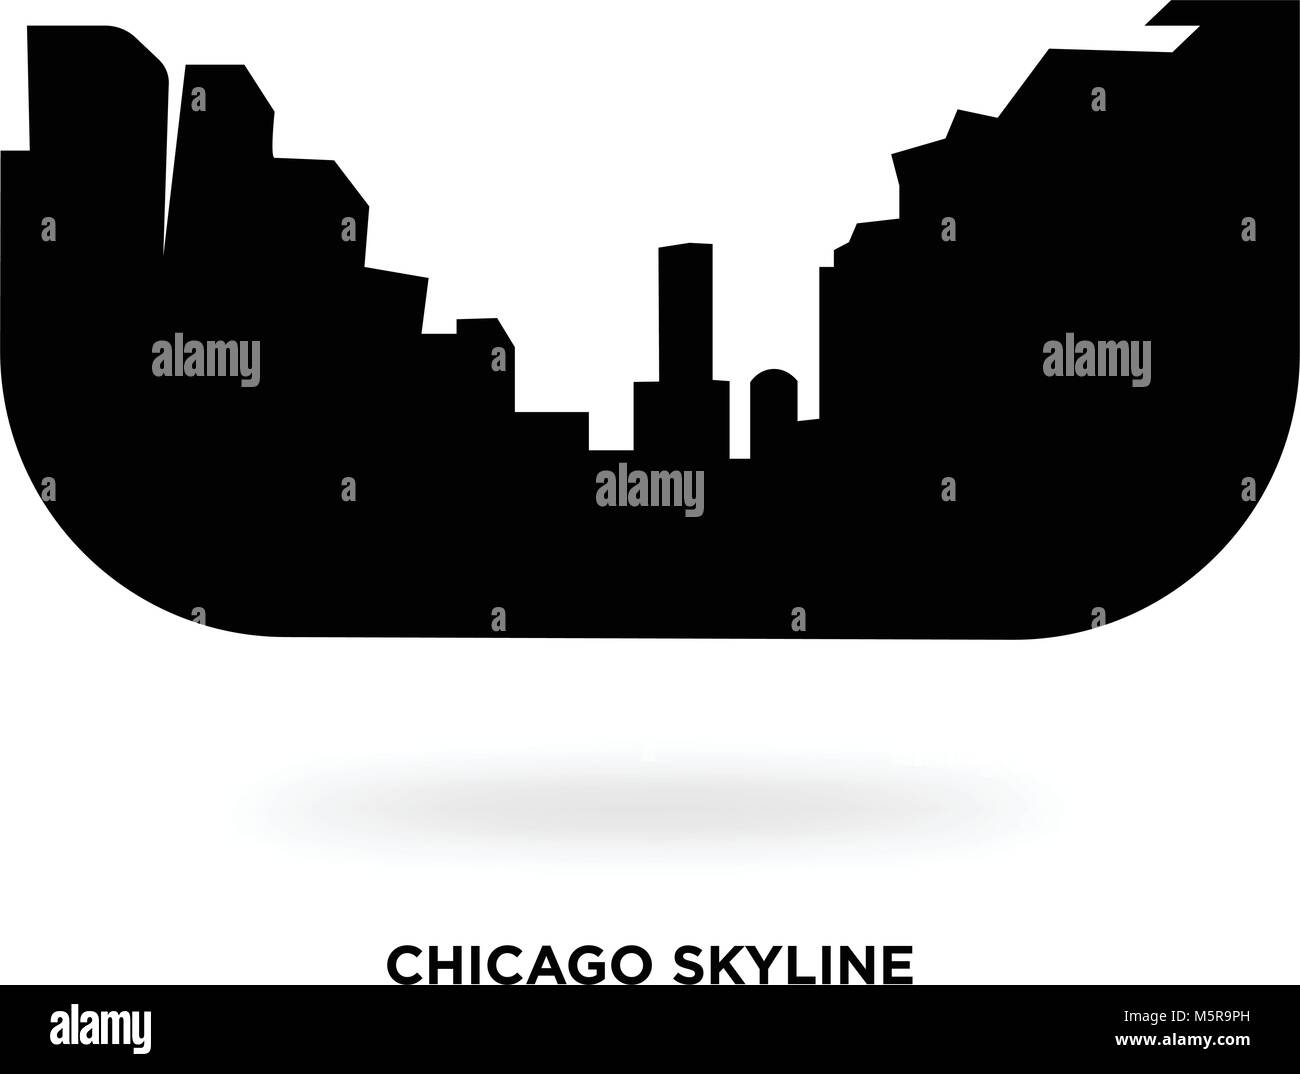 chicago skyline silhouette stock vector art illustration vector